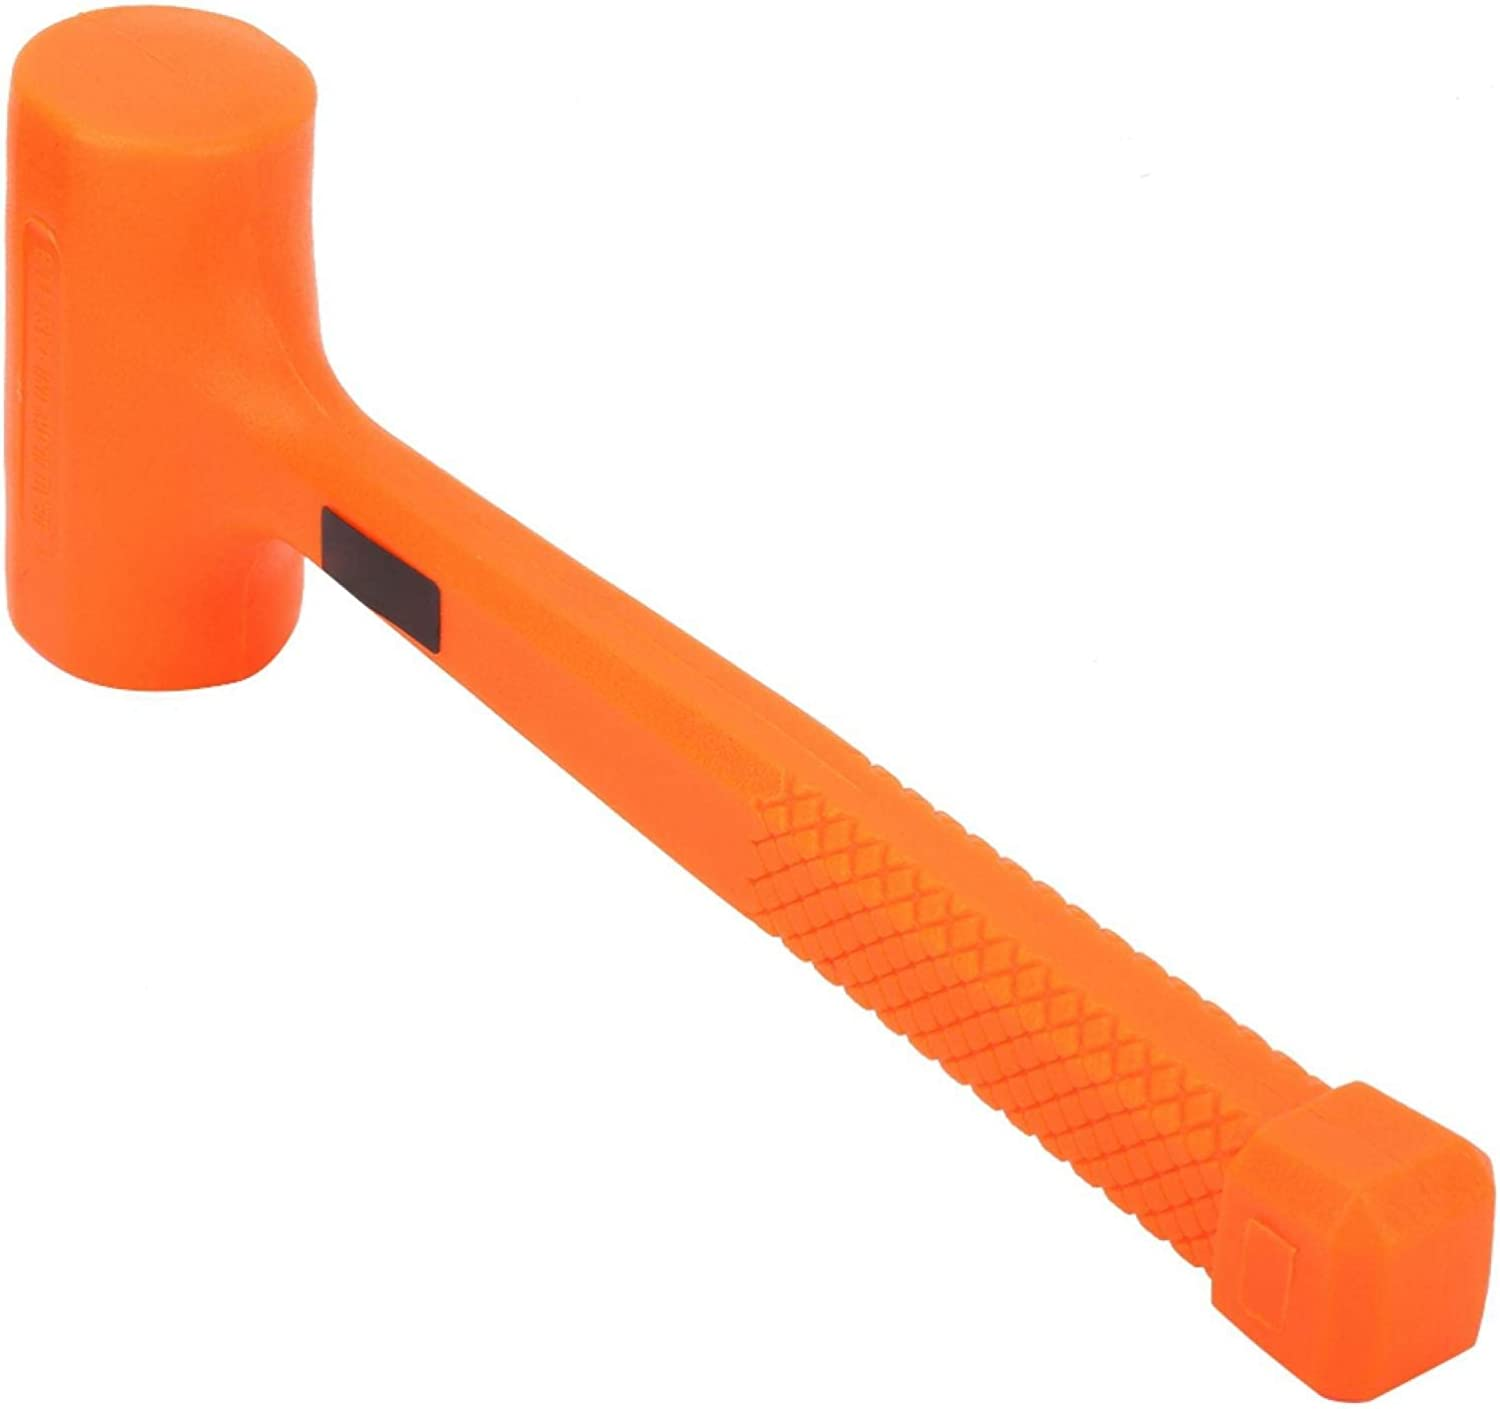 Outlet ☆ Free Shipping Hammer no damage Dead Today's only Blow petrochem Soft Face for